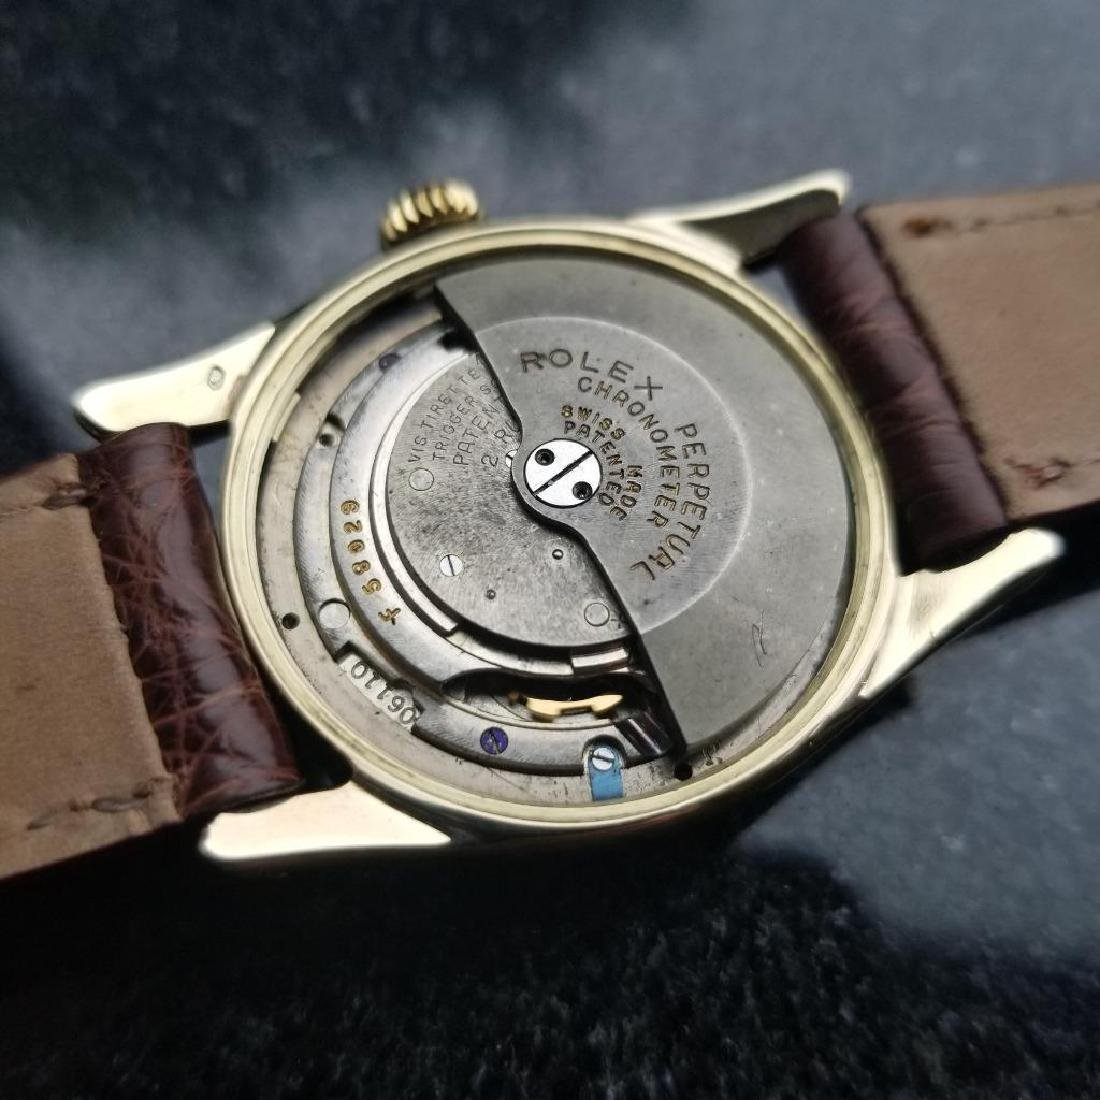 Rolex Oyster Perpetual Vintage 1951 14k Gold 6092 - 10